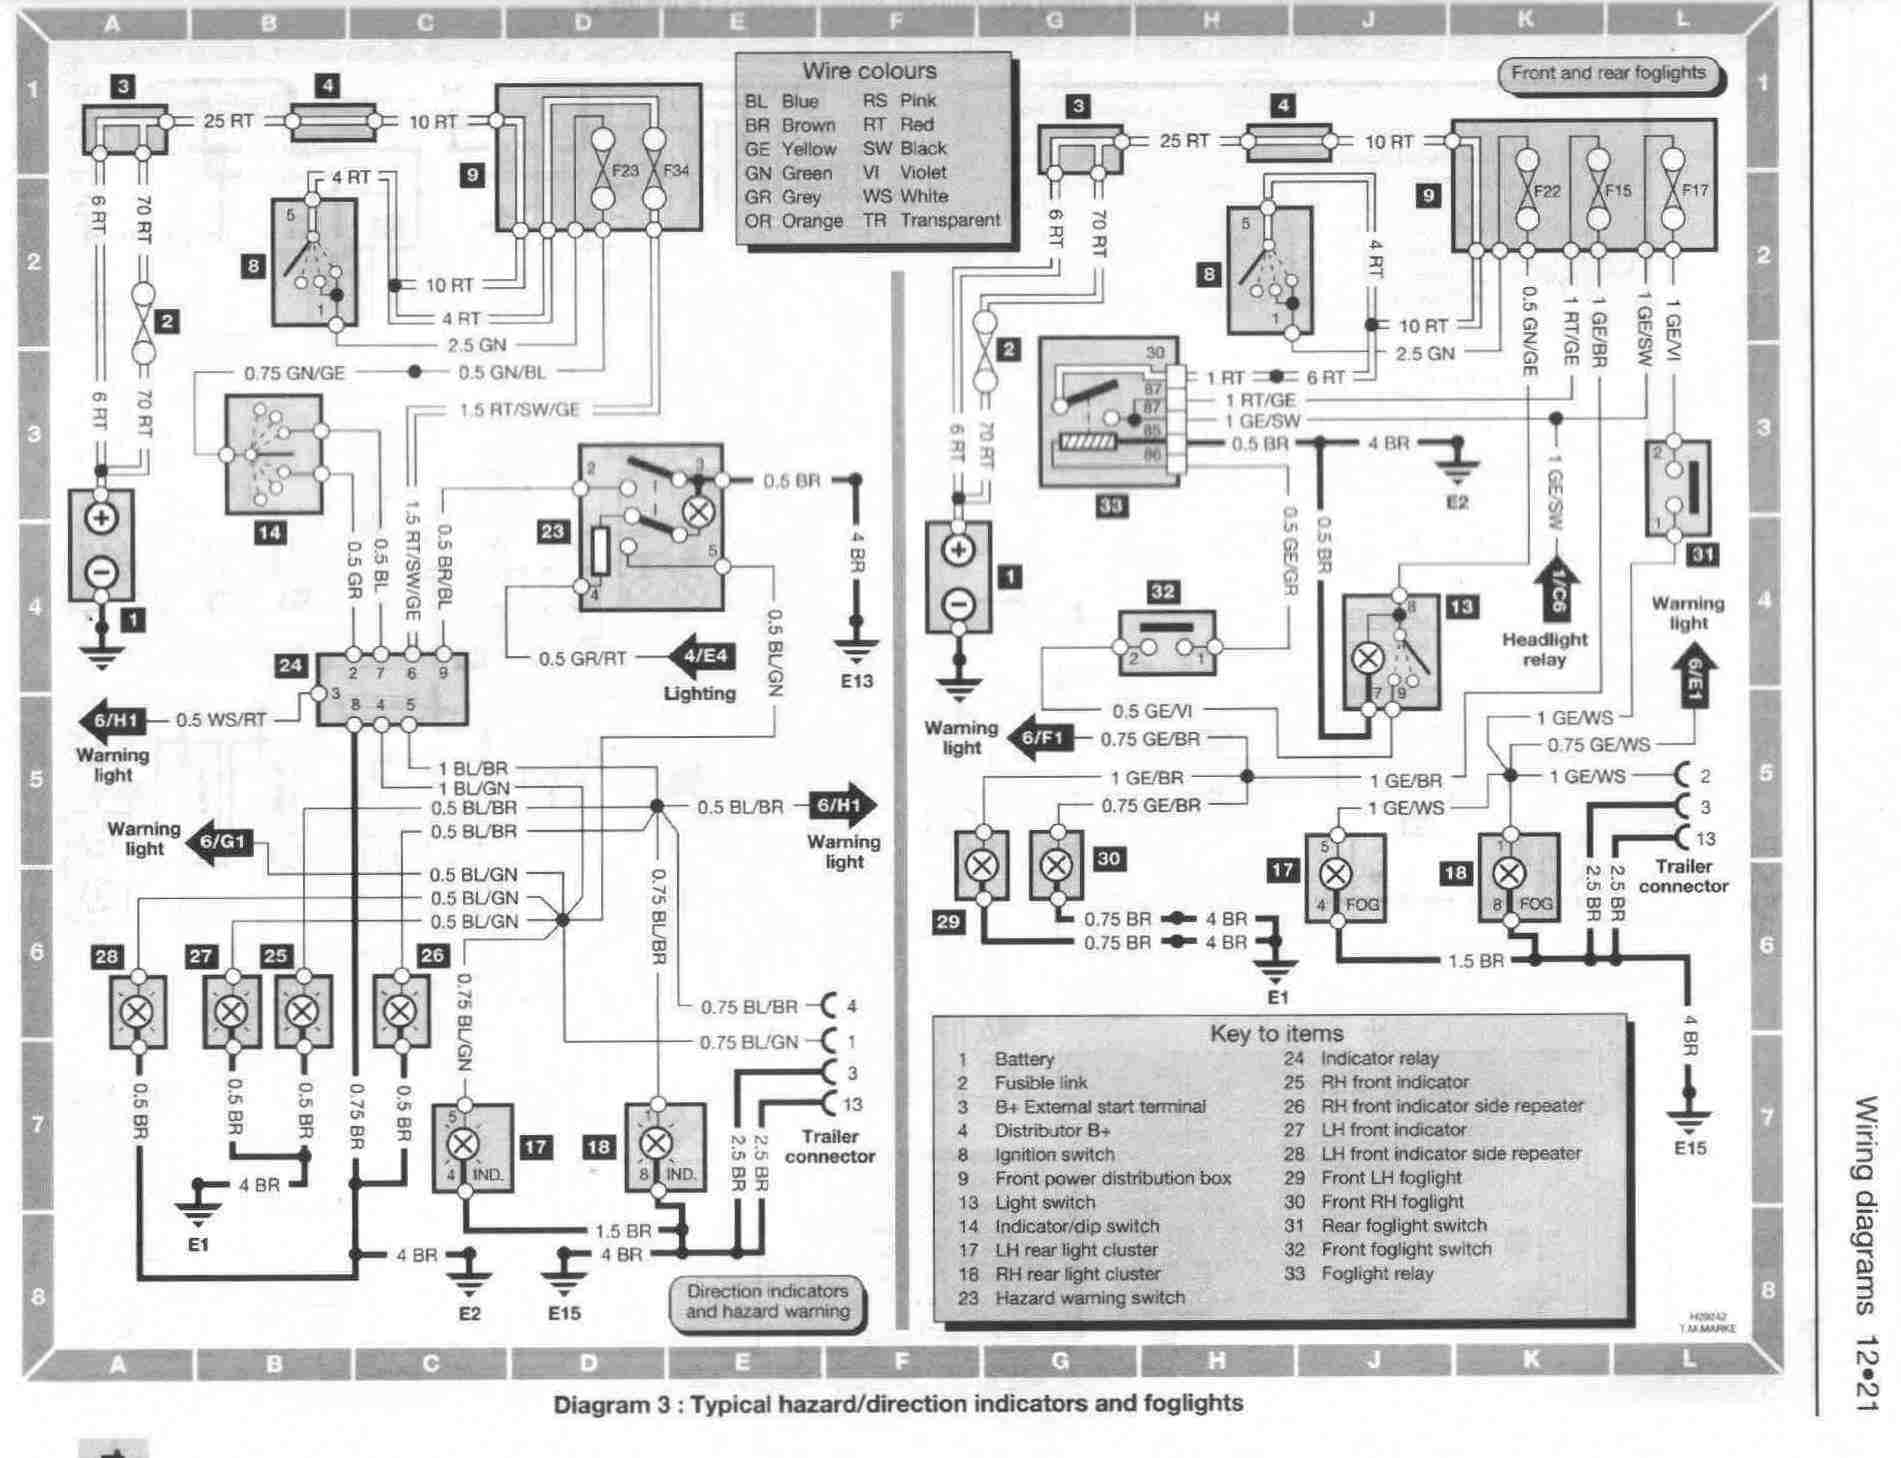 2000 bmw 323i stereo wiring diagram 98 jeep wrangler speaker also e46 fuse box location in